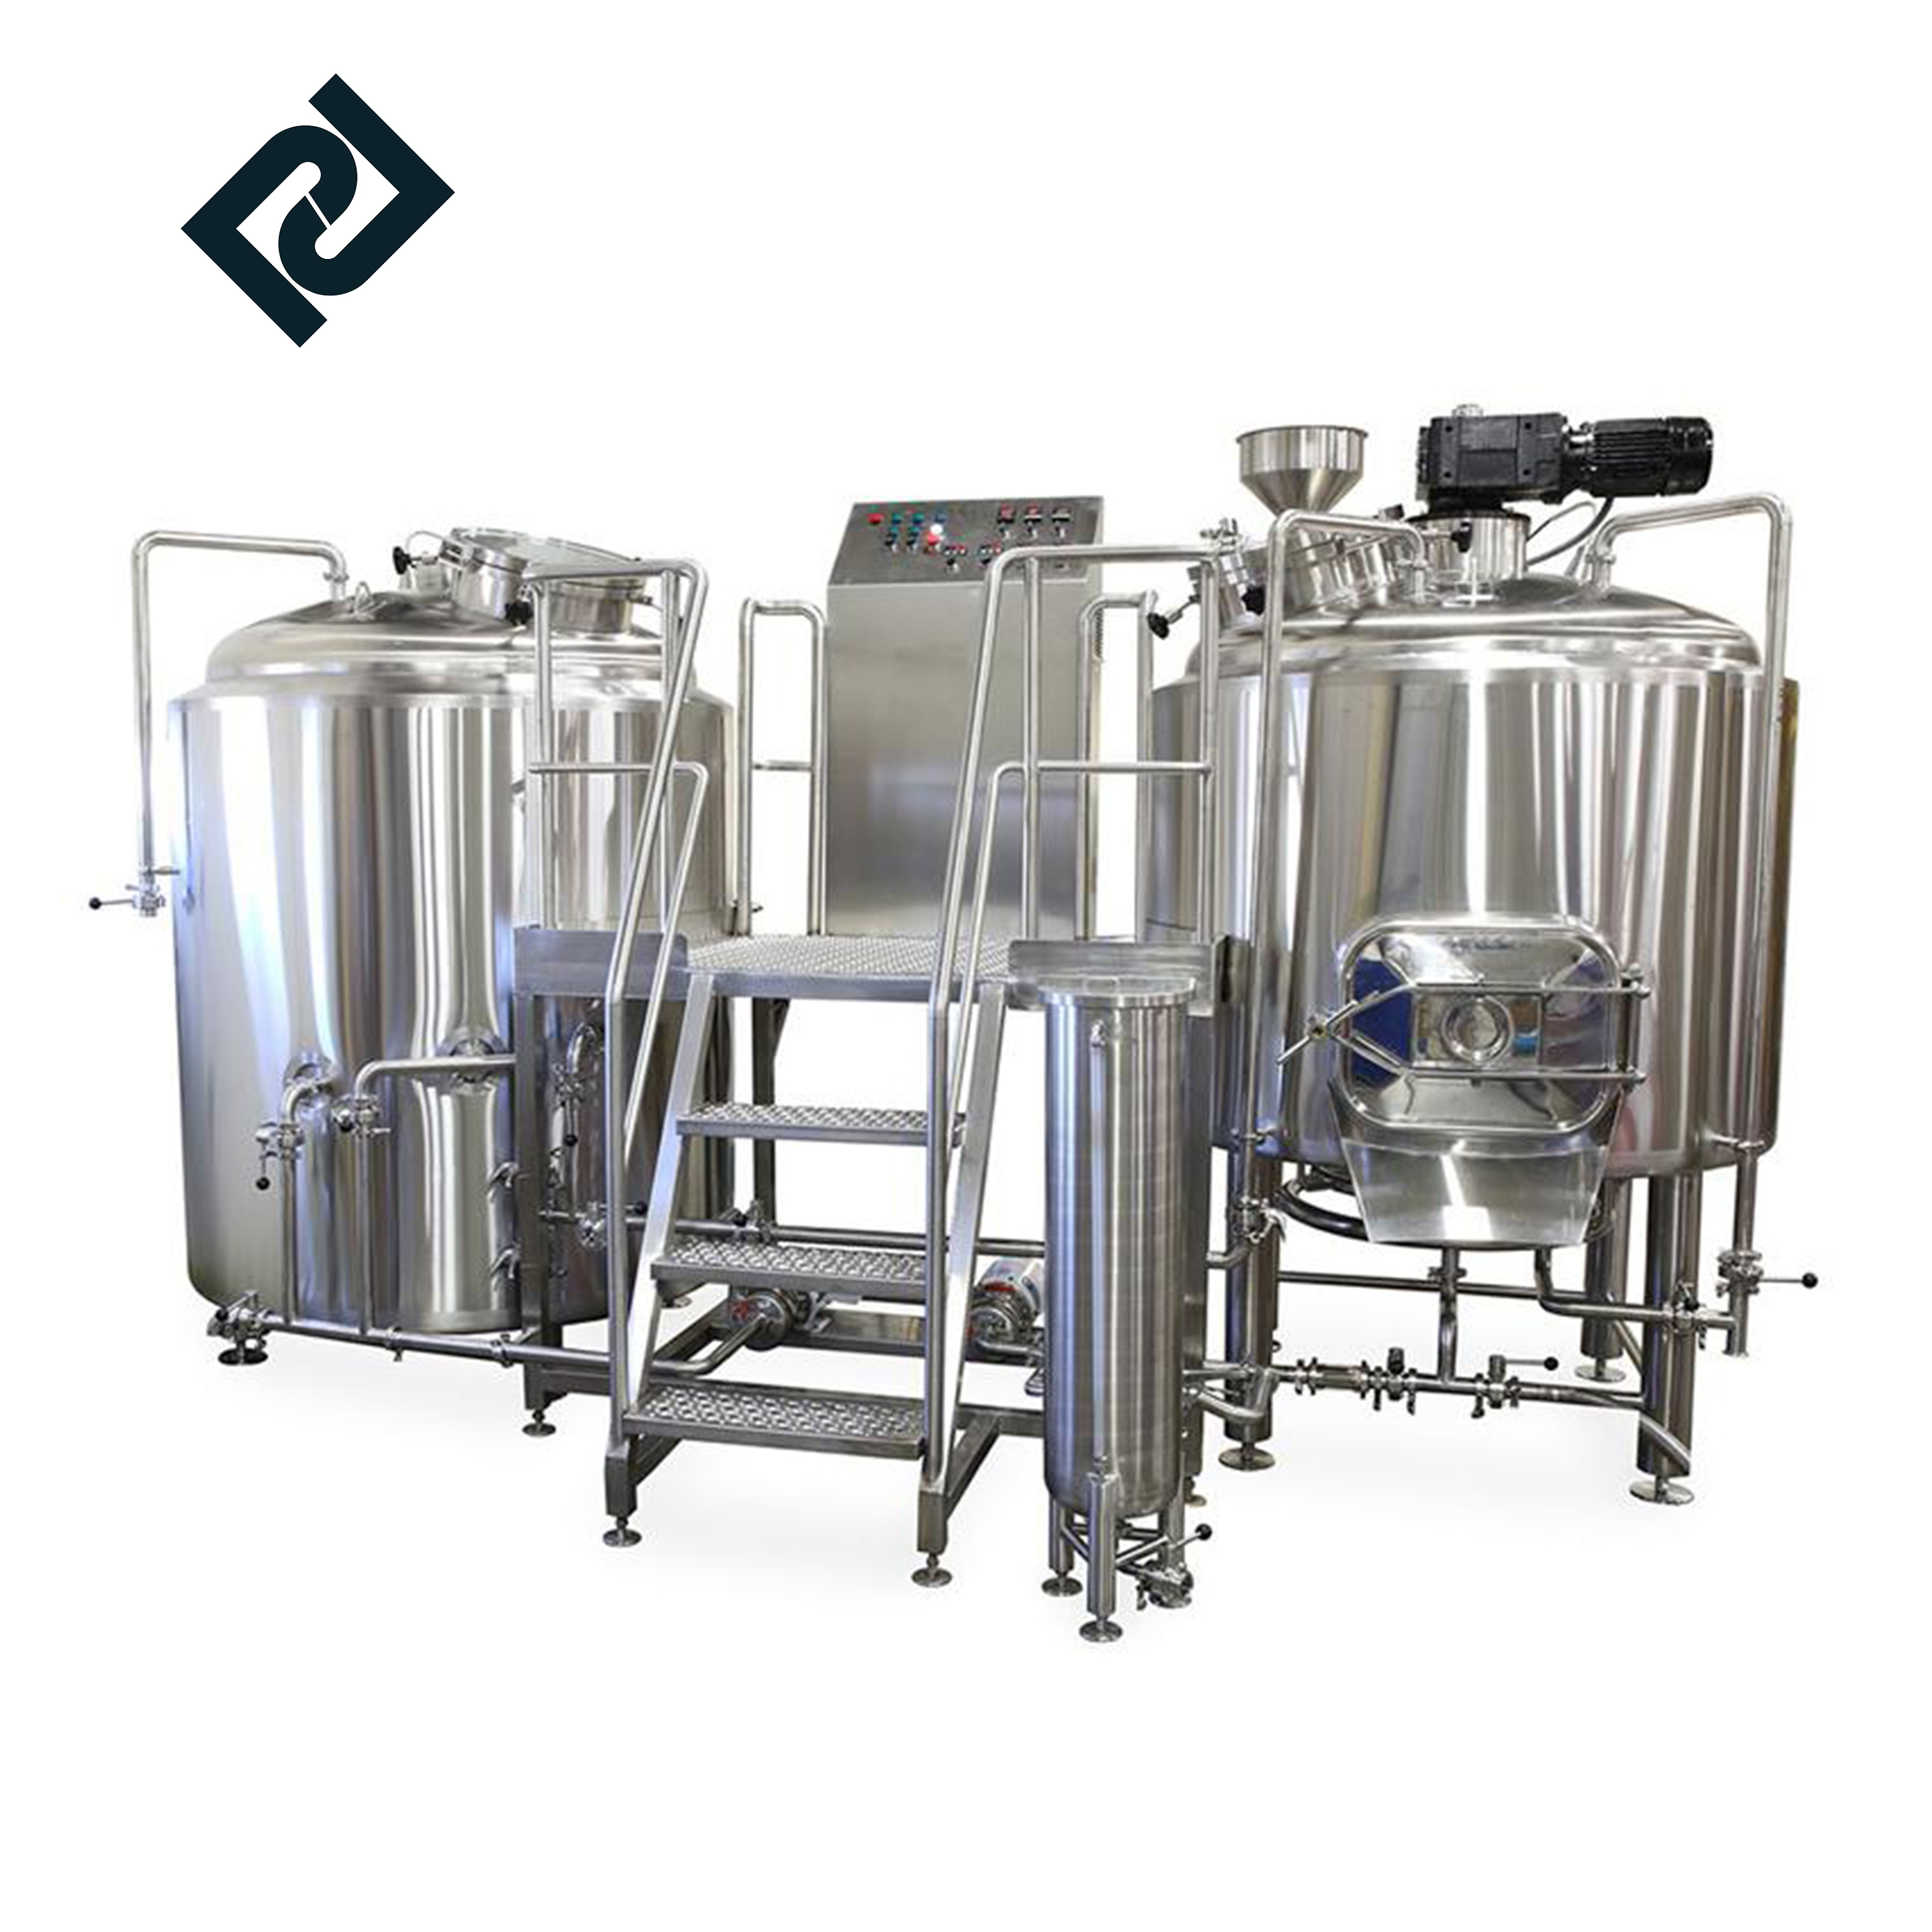 Well-designed 1bbl 3bbl 5bbl 10bbl Micro Brewery System - 10bbl commerical beer brewing equipment  brewing equipment microbrewery equipment – Pijiang